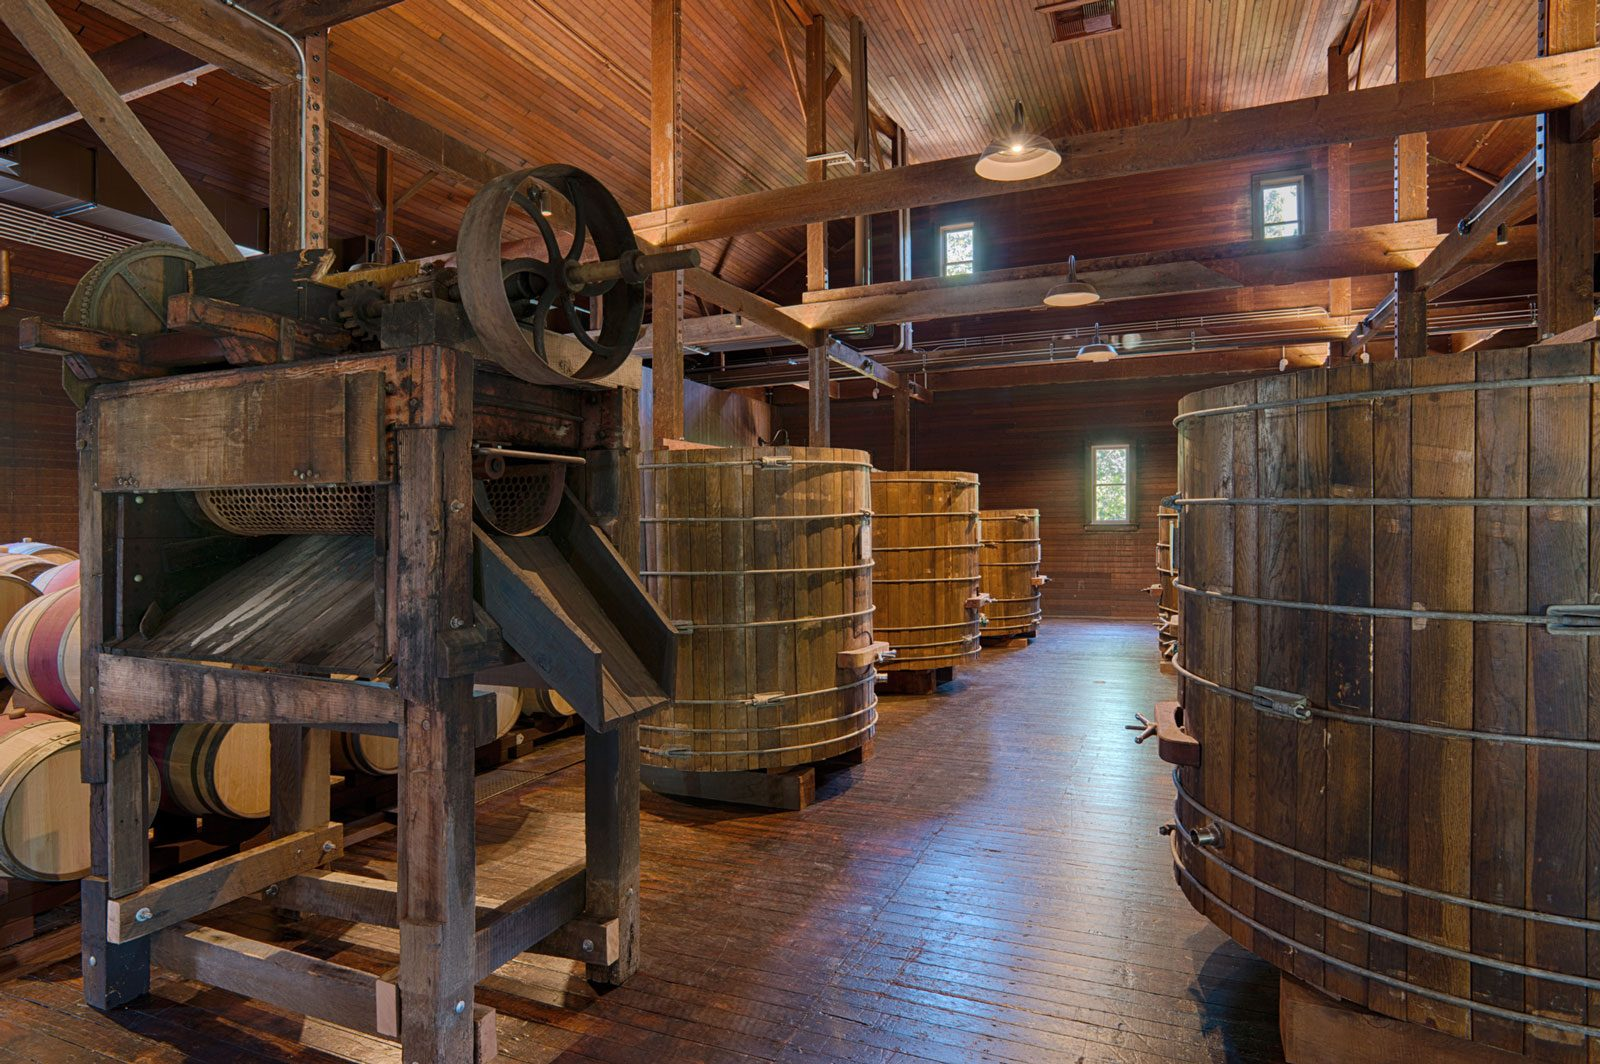 Antique crush pads and winery equipment